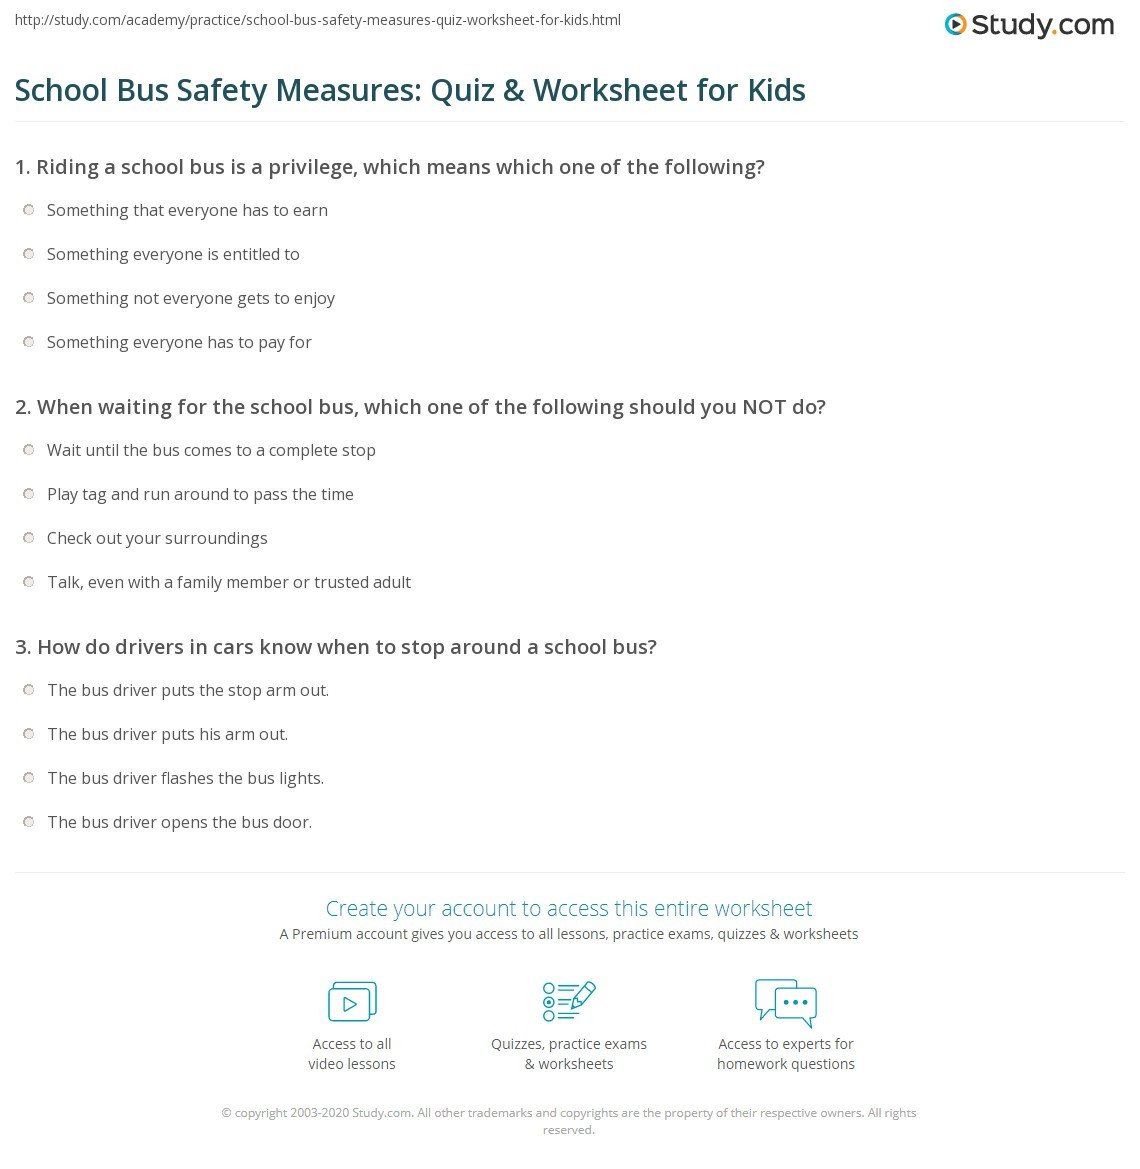 school bus safety measures quiz worksheet for kids